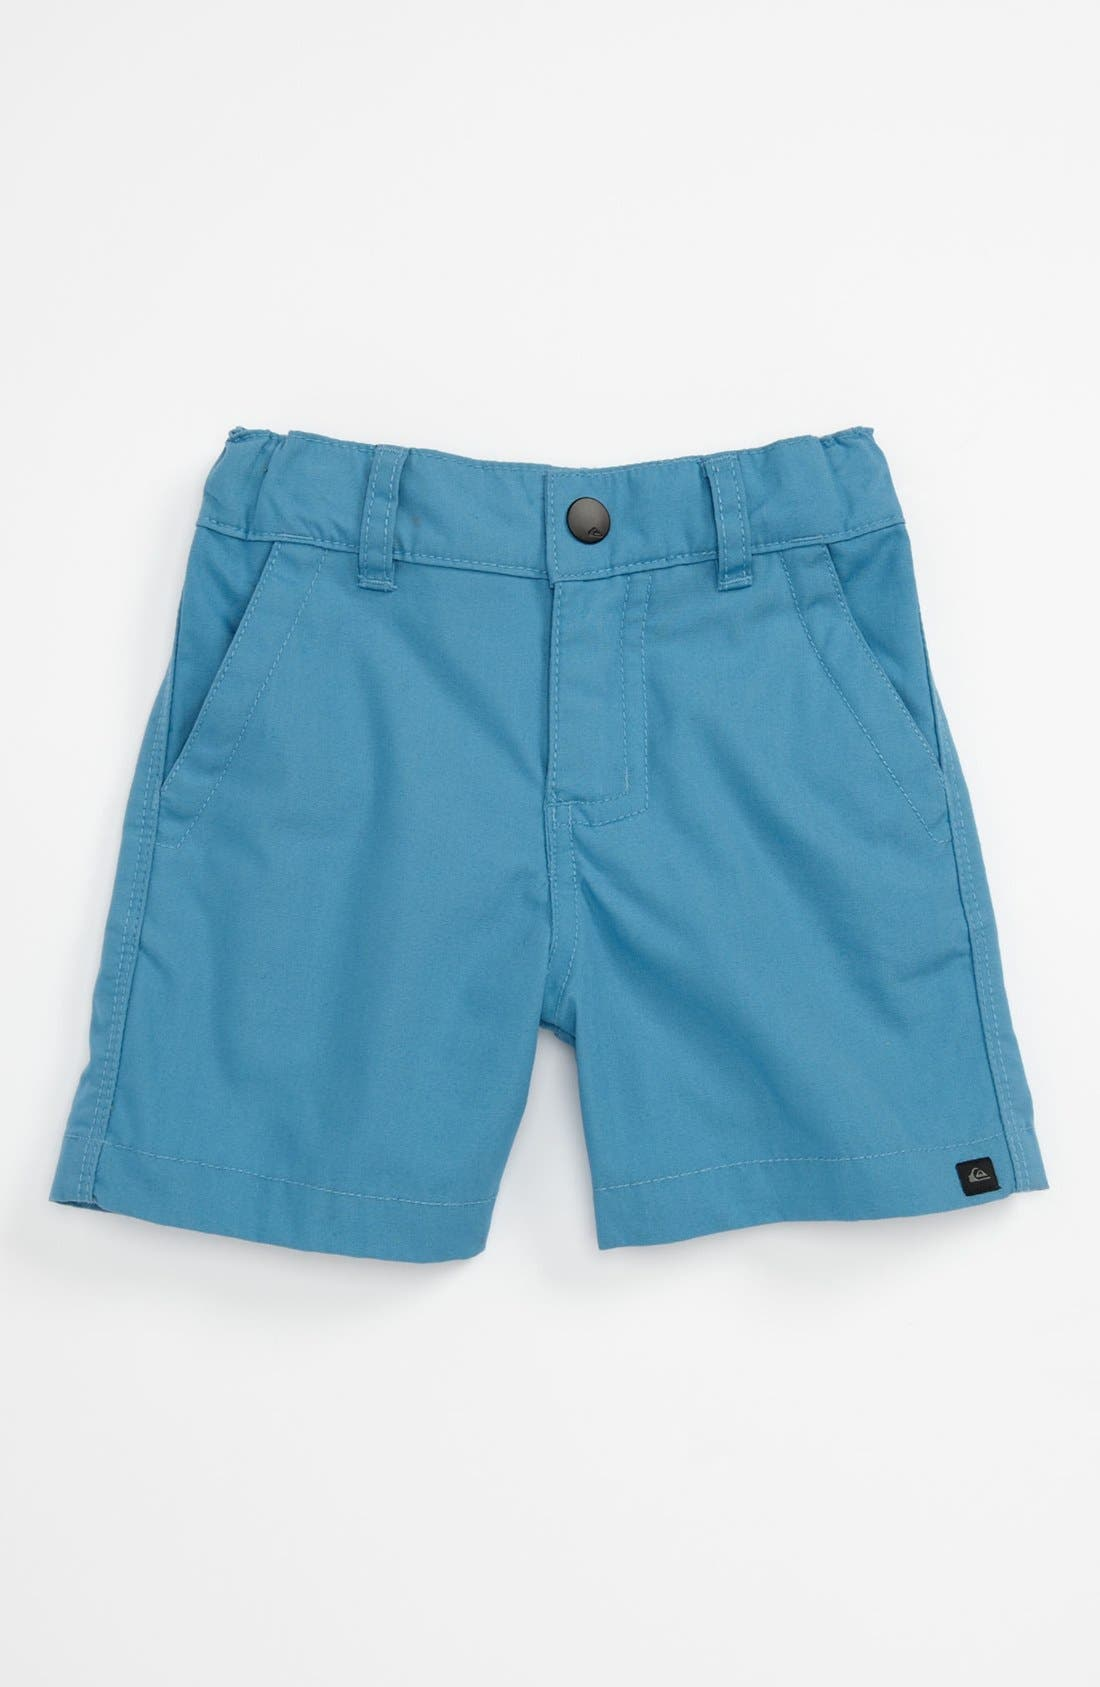 Main Image - Quiksilver 'Rockford' Shorts (Toddler)